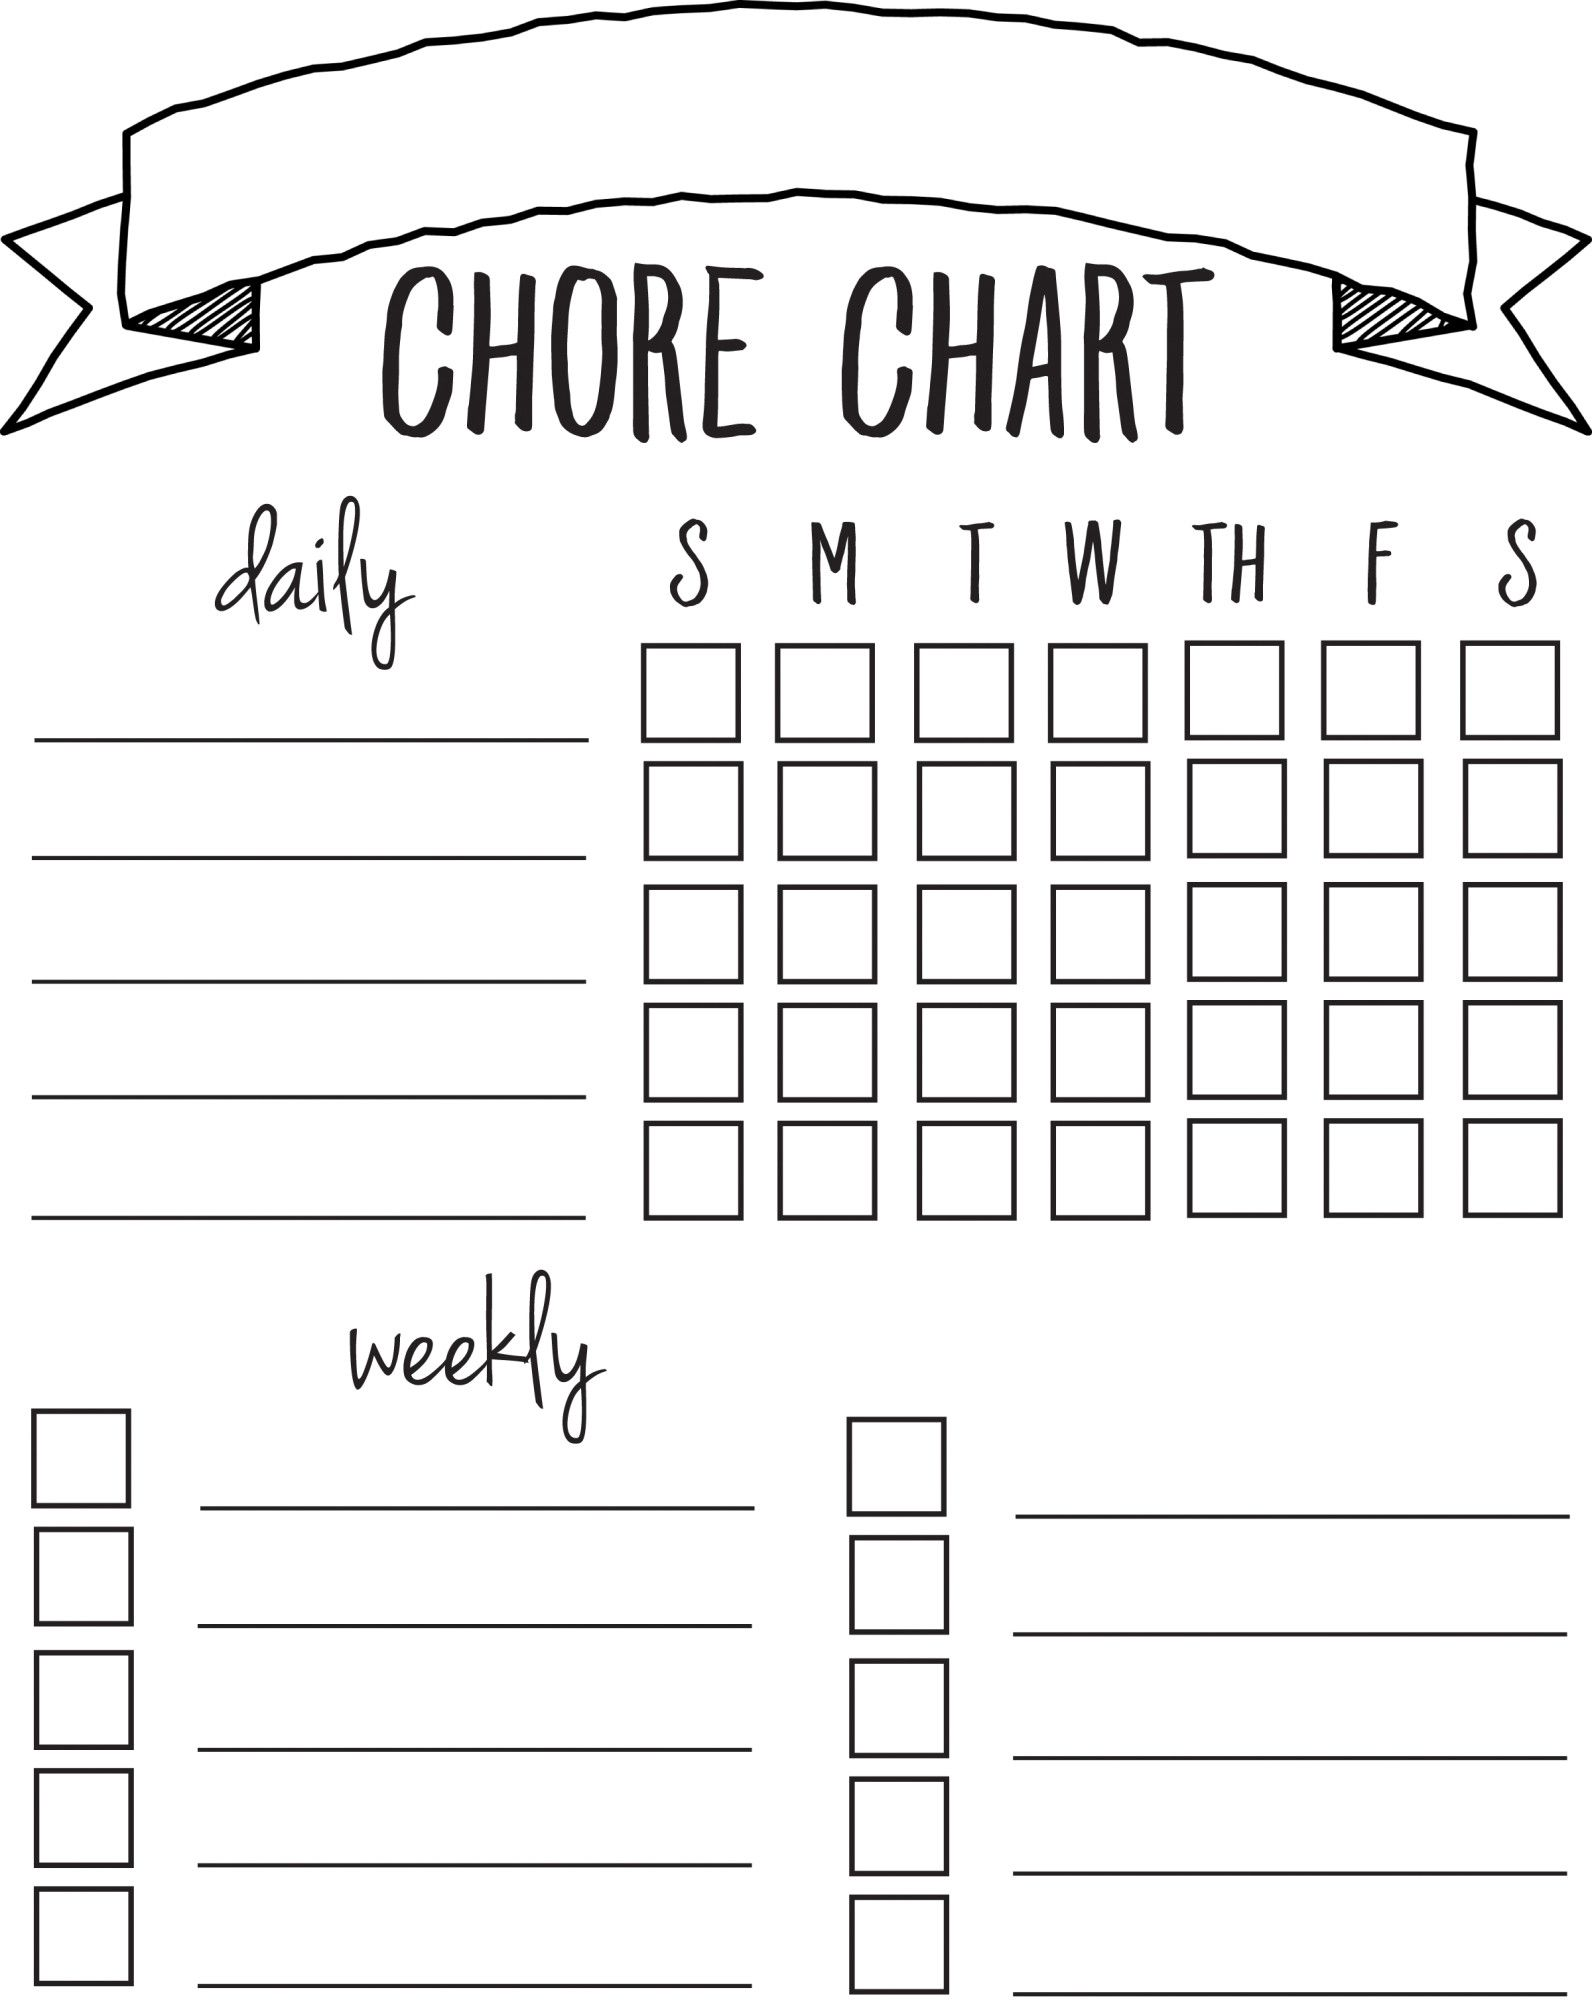 photograph about Chore Chart Printable Free referred to as Do it yourself Printable Chore Chart absolutely free printables NOV/FEB Chore